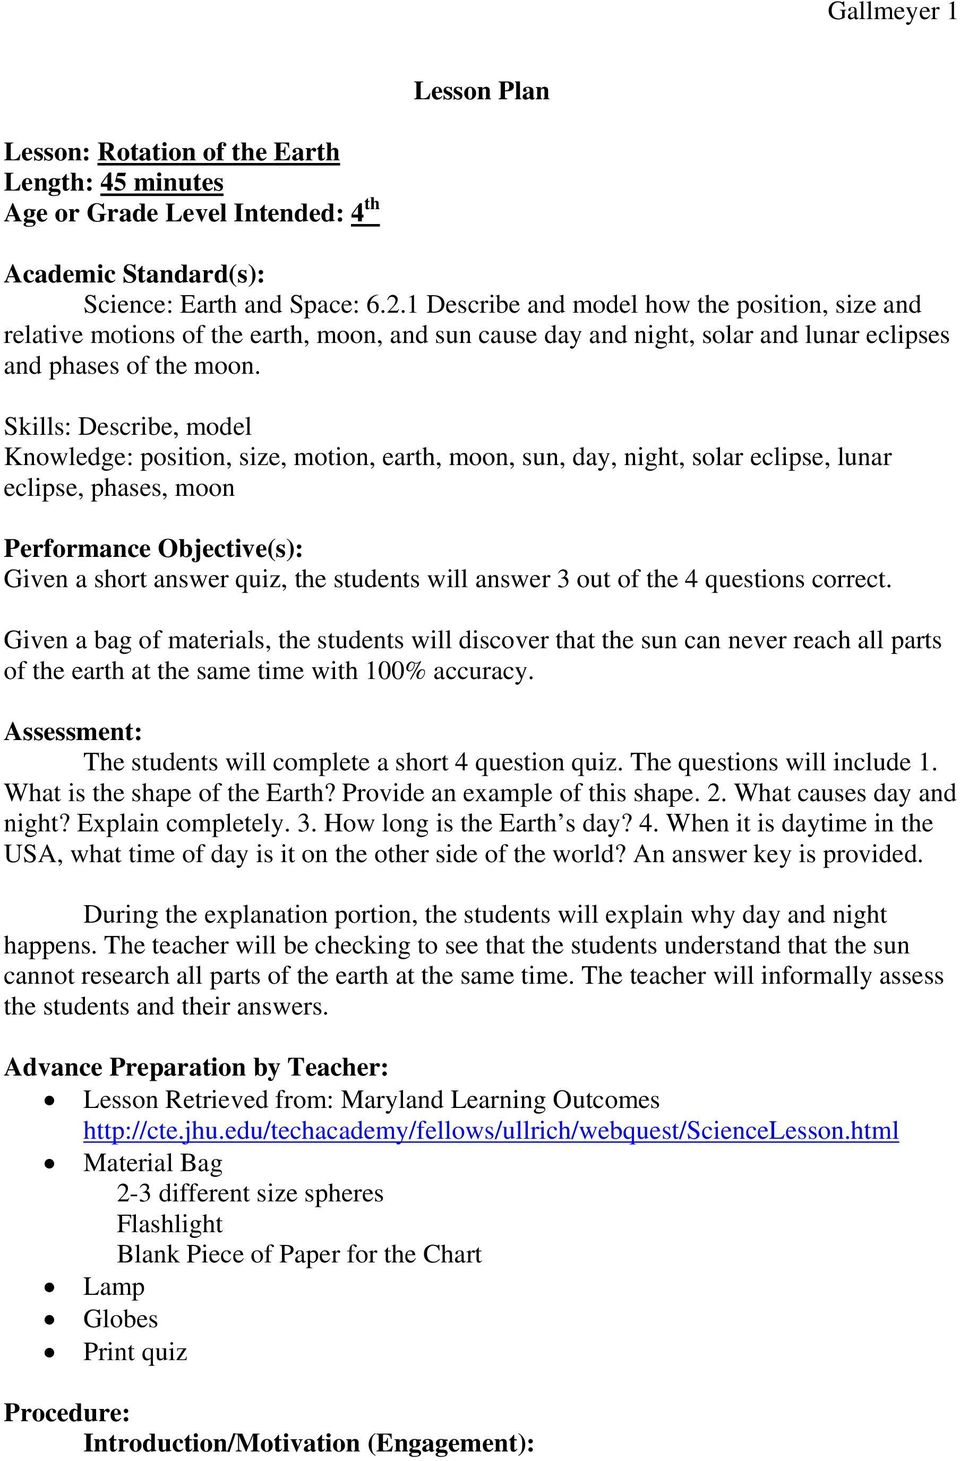 Skills: Describe, model Knowledge: position, size, motion, earth, moon, sun, day, night, solar eclipse, lunar eclipse, phases, moon Performance Objective(s): Given a short answer quiz, the students